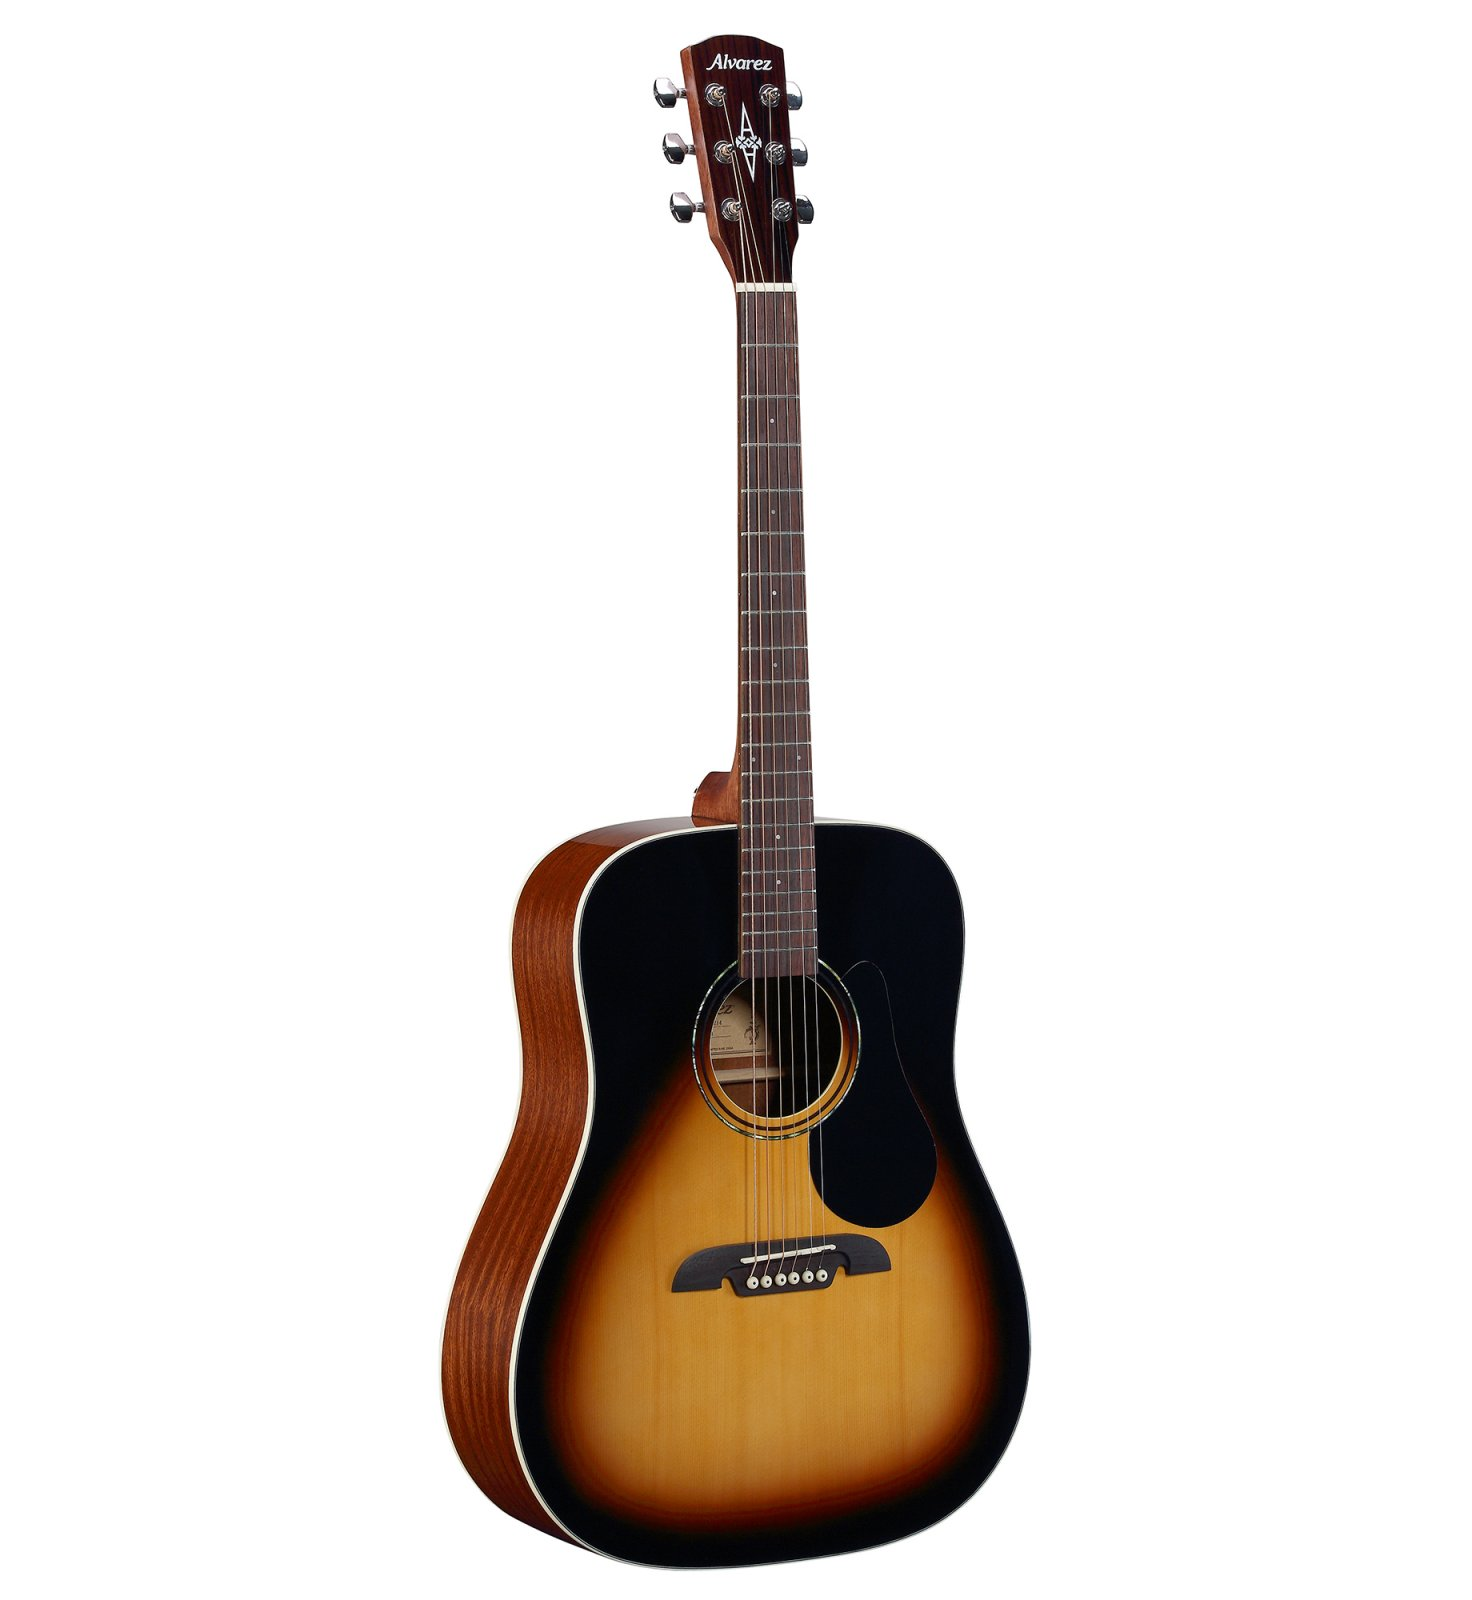 Alvarez Dreadnought; Spruce Top; Mahogany Back and Sides; Gig Bag Included